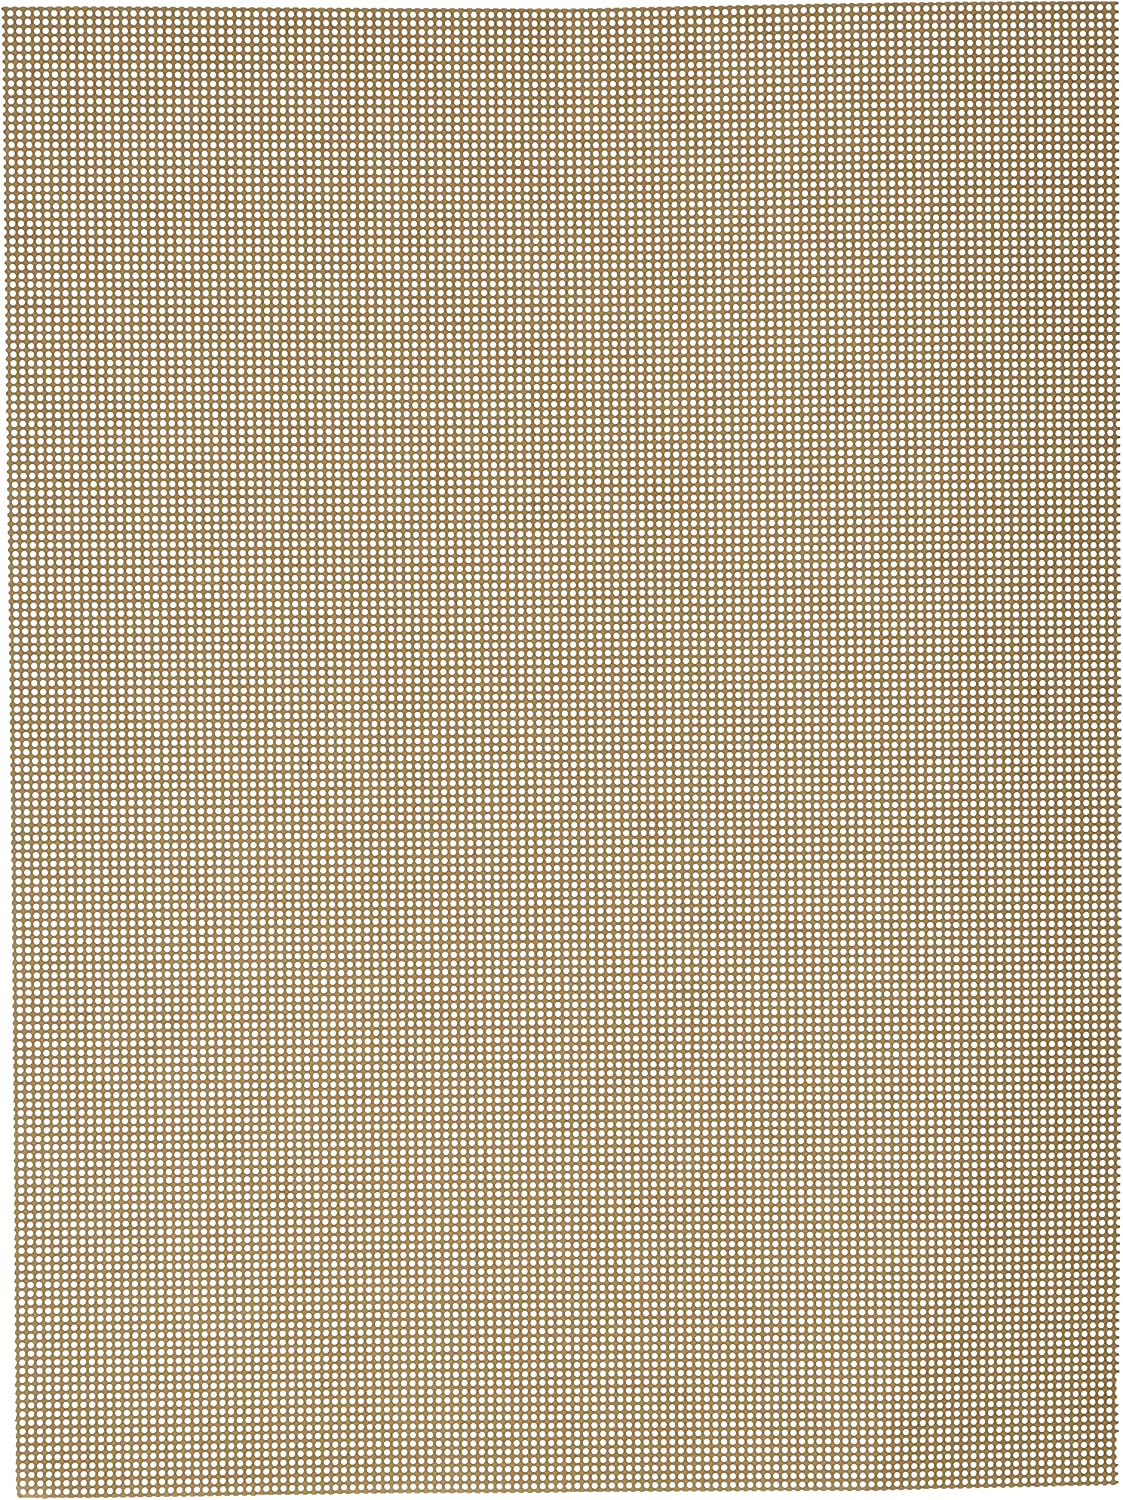 Holly Green Painted Perforated Paper Mill Hill 14 Count 9x12 Inches